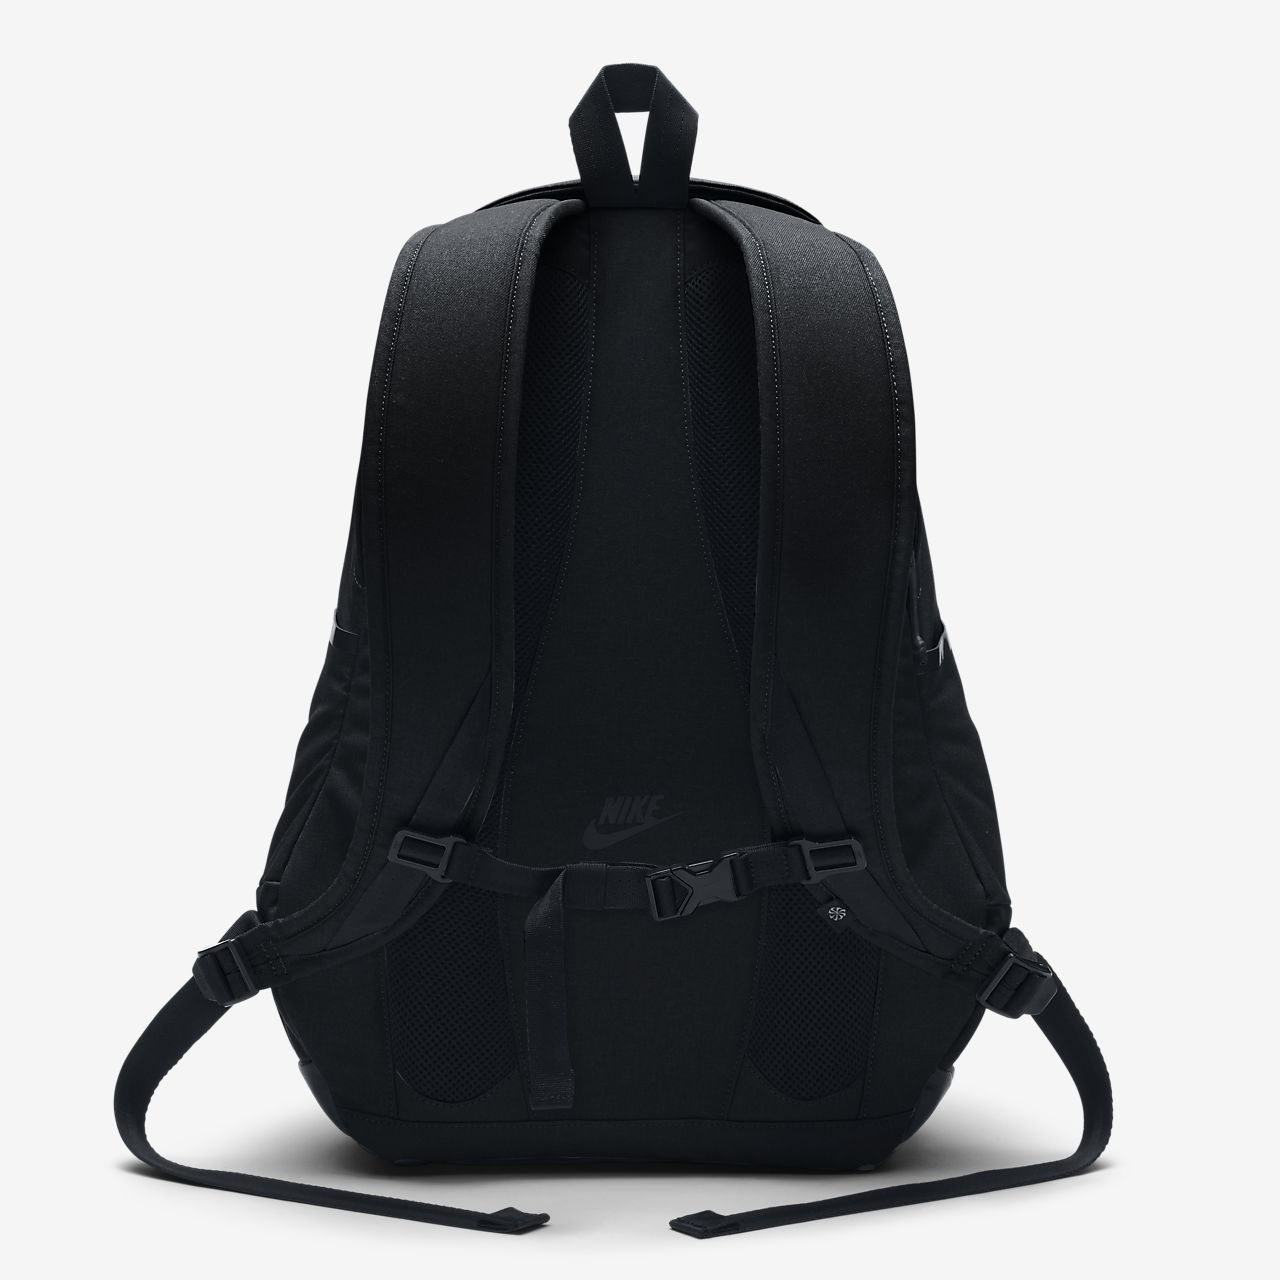 ed9e0a4729 Low Resolution Nike Sportswear Tech Cheyenne Backpack Nike Sportswear Tech  Cheyenne Backpack